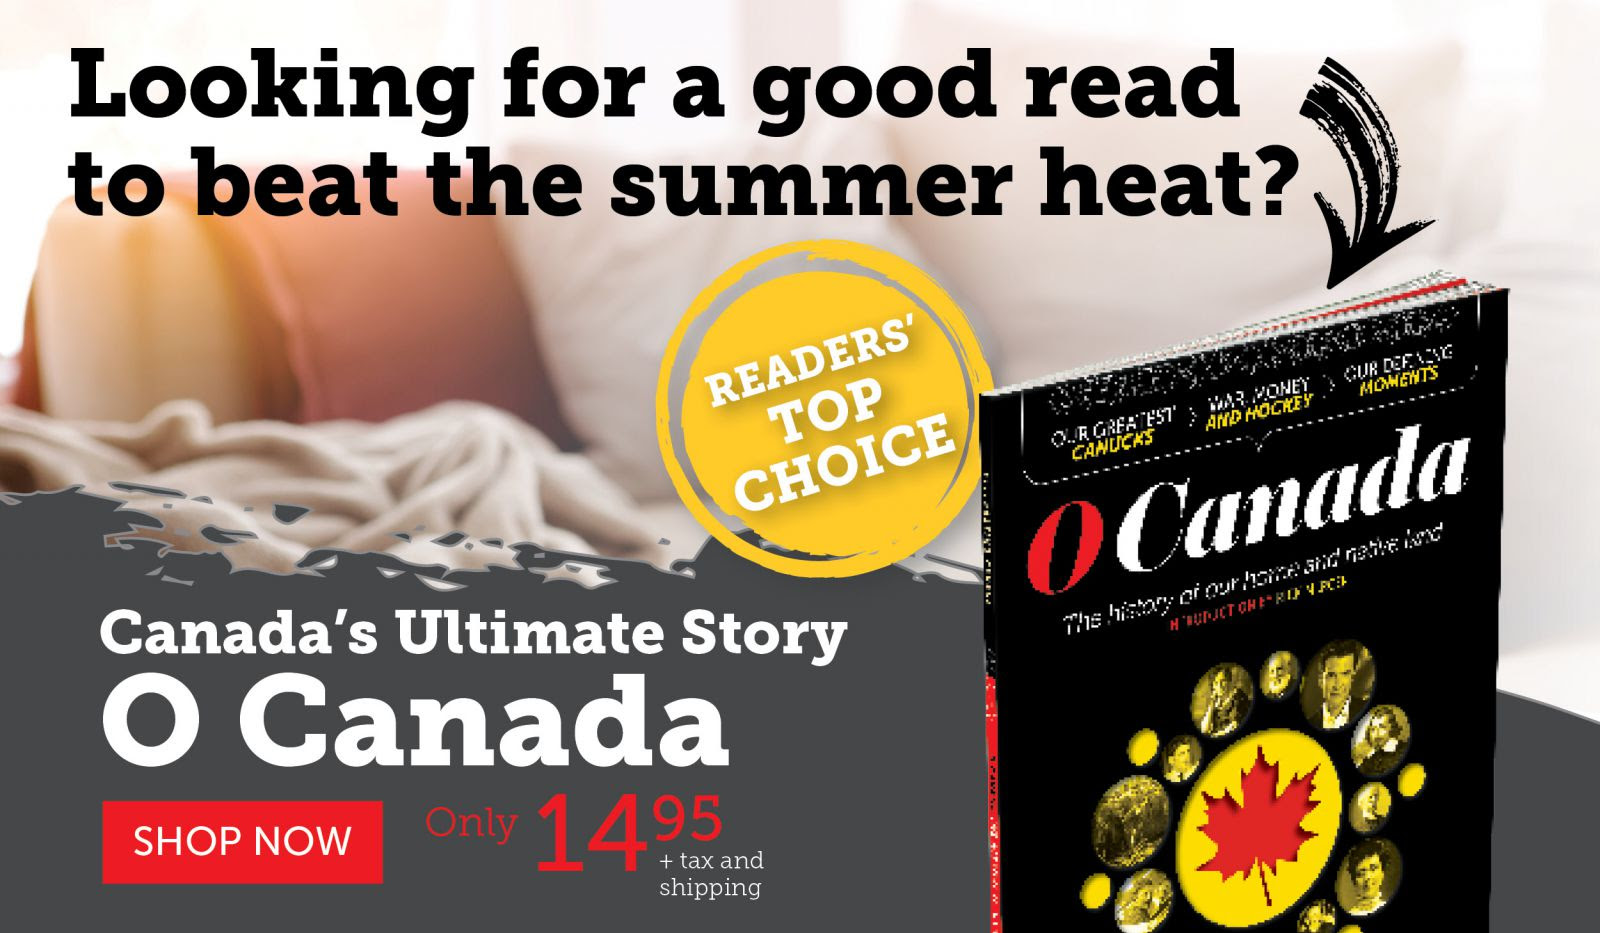 O Canada | Readers Top Choice!